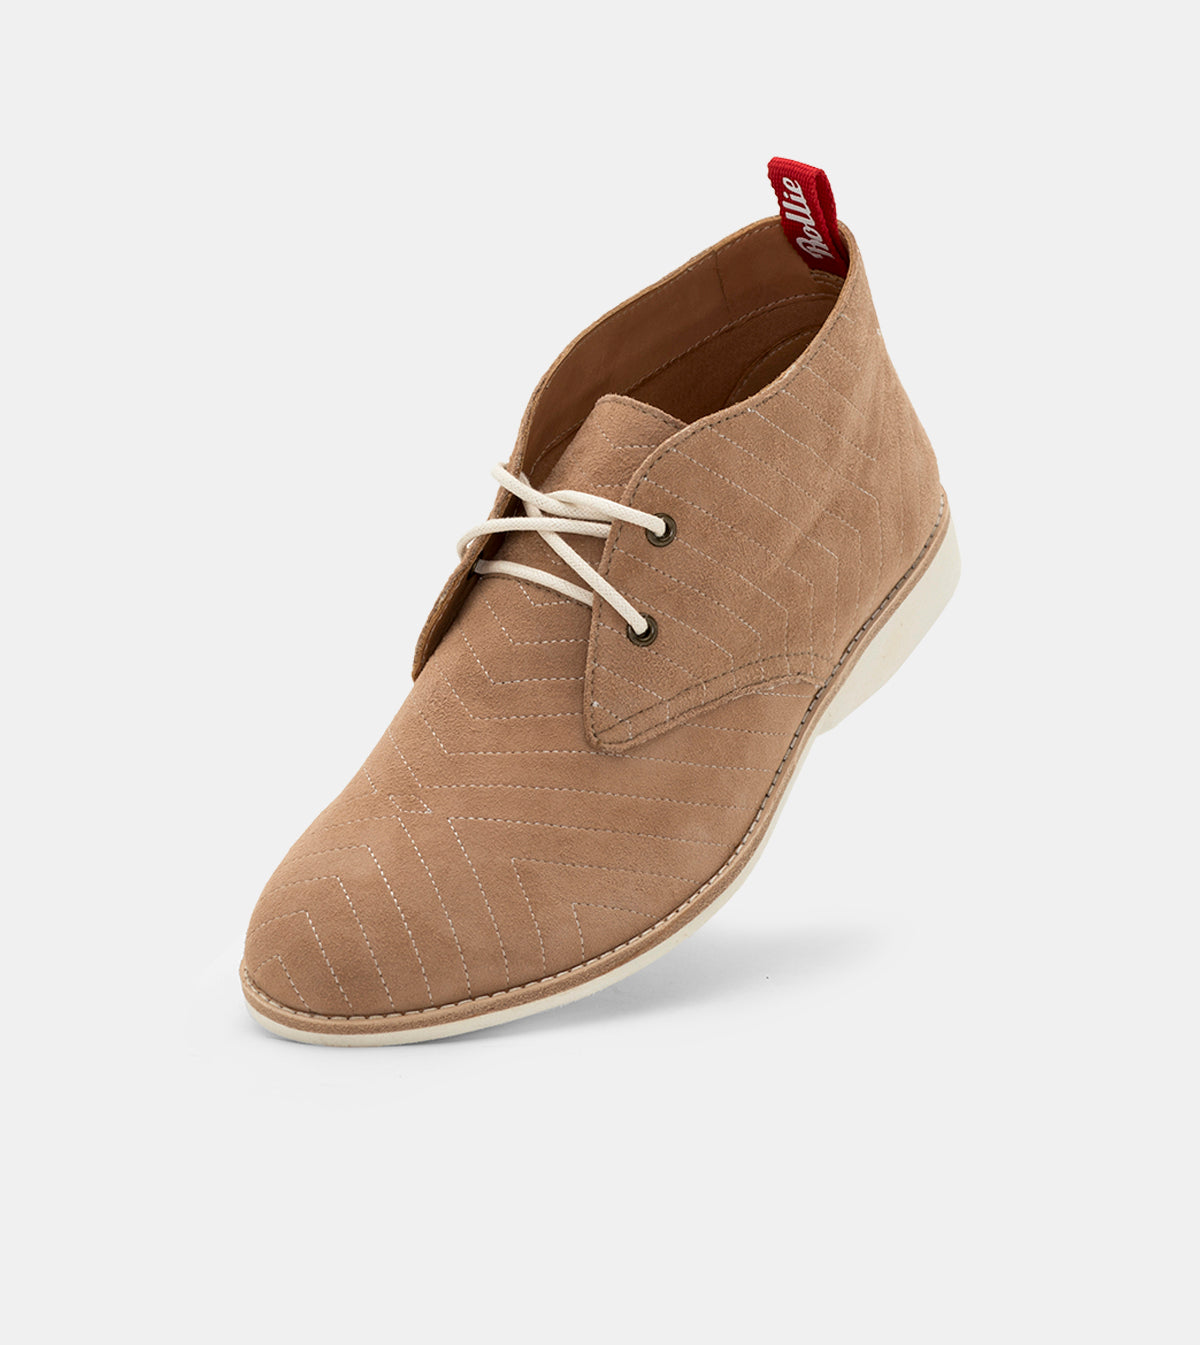 Rollie Chukka Embroidered Taupe Suede Shoes